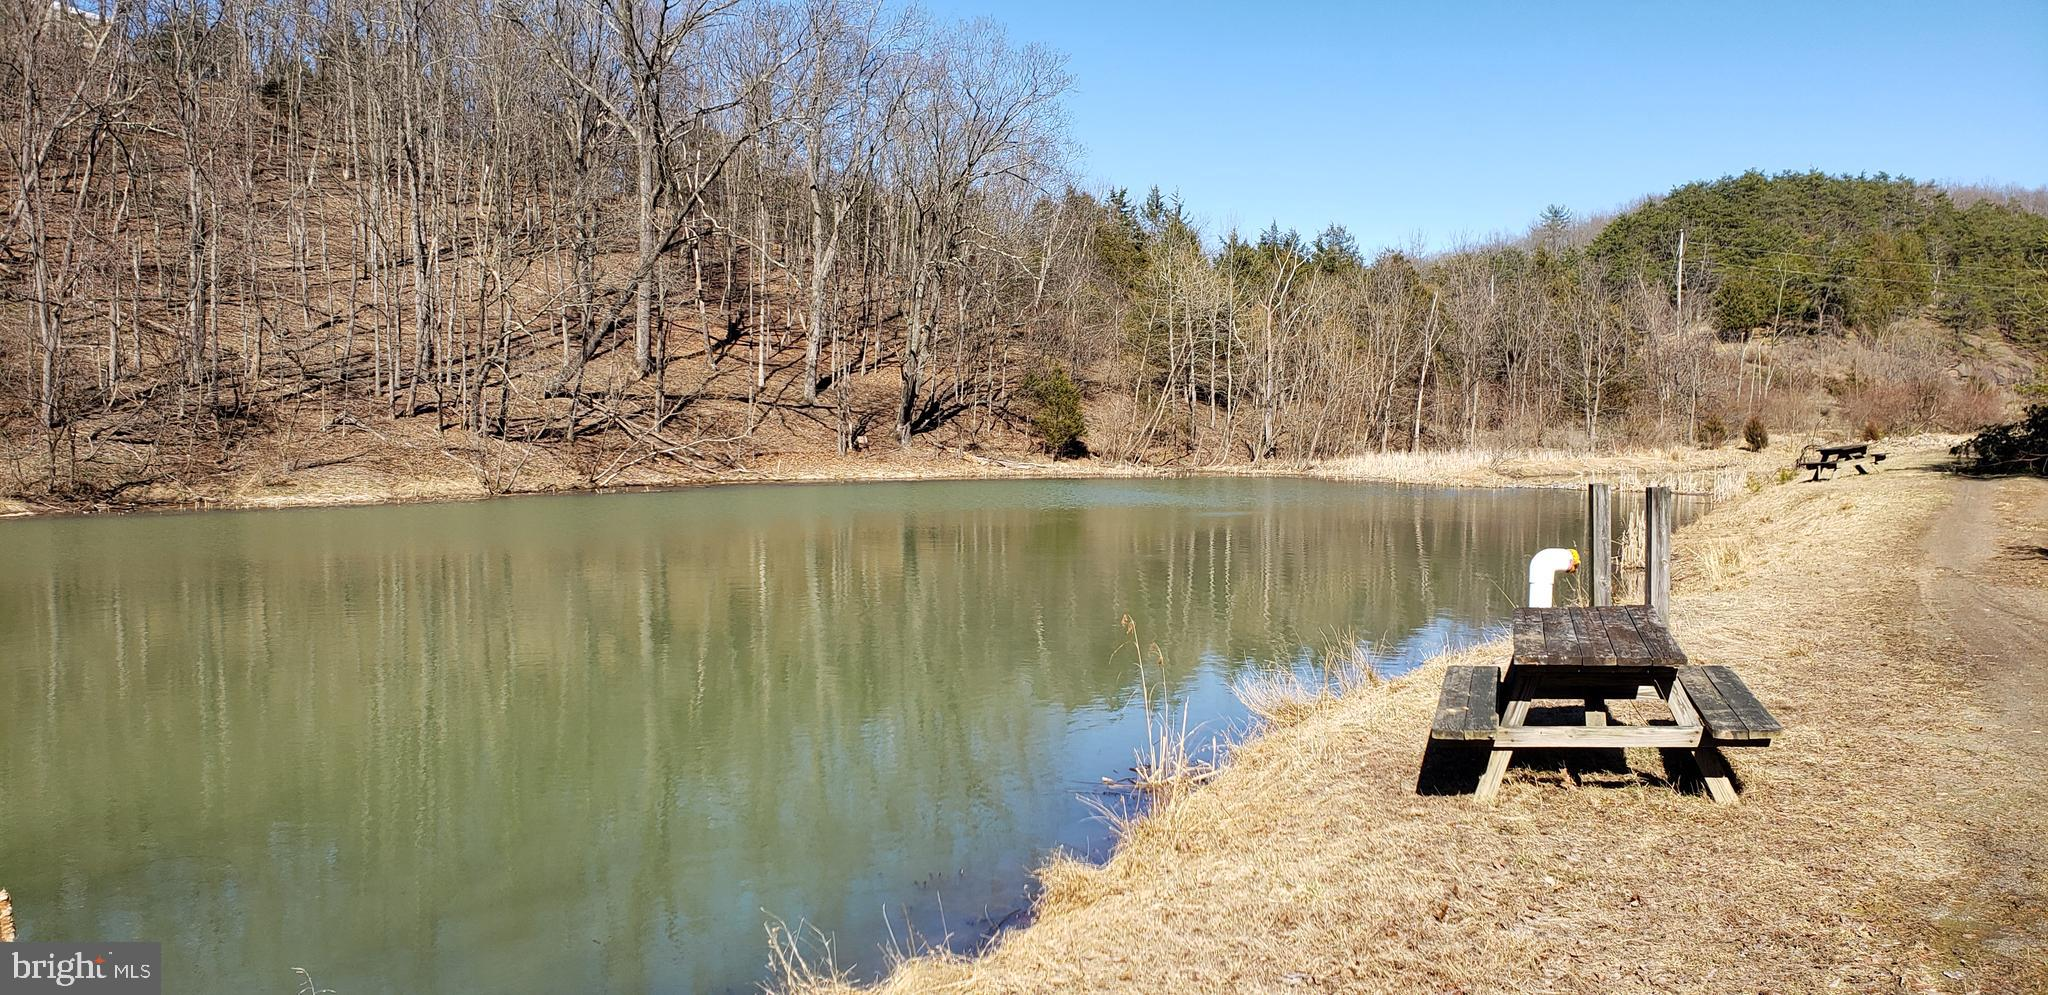 Lot 1 OLD MOUNTAIN RUN TRAIL, PURGITSVILLE, WV 26852